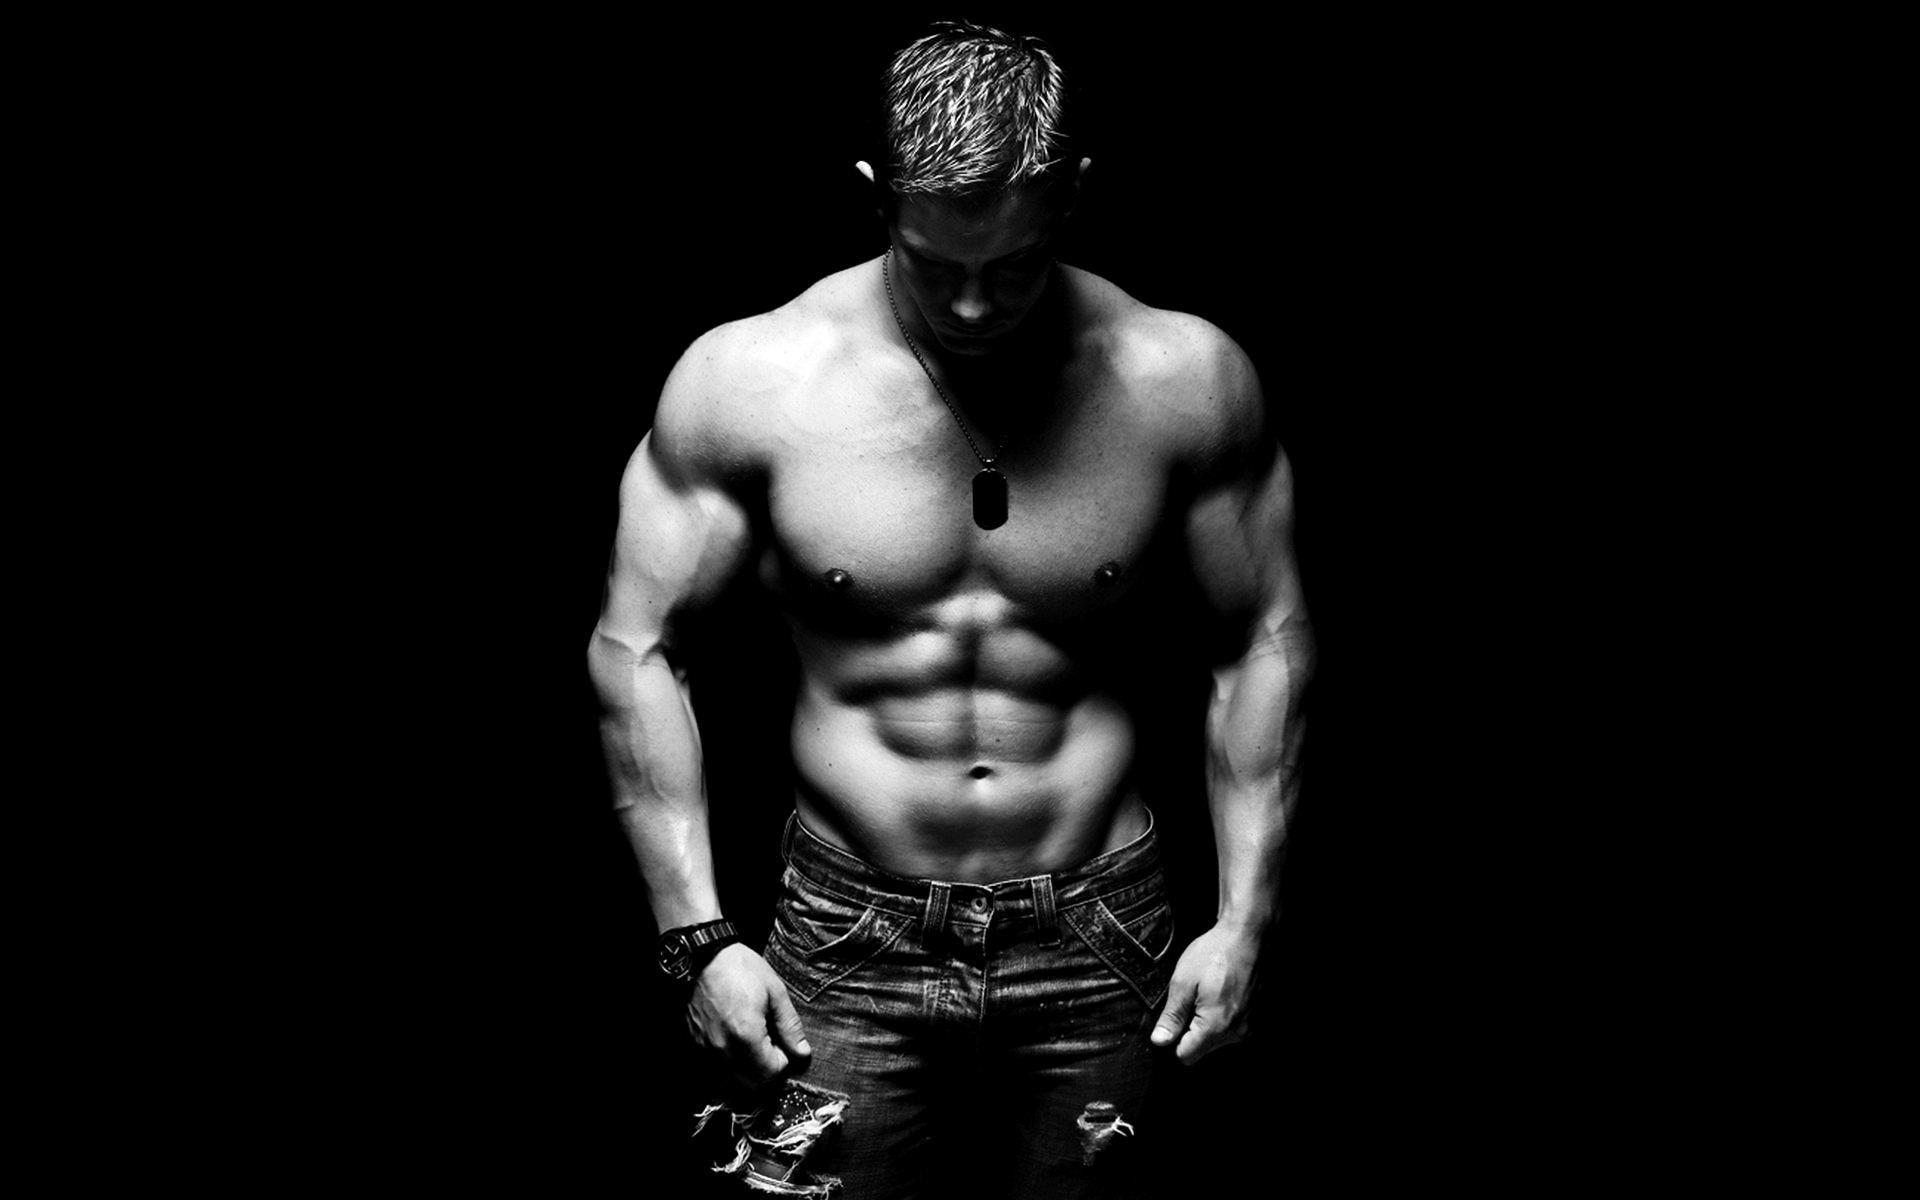 Bodybuilding Wallpapers For Mobile Wallpaper Cave